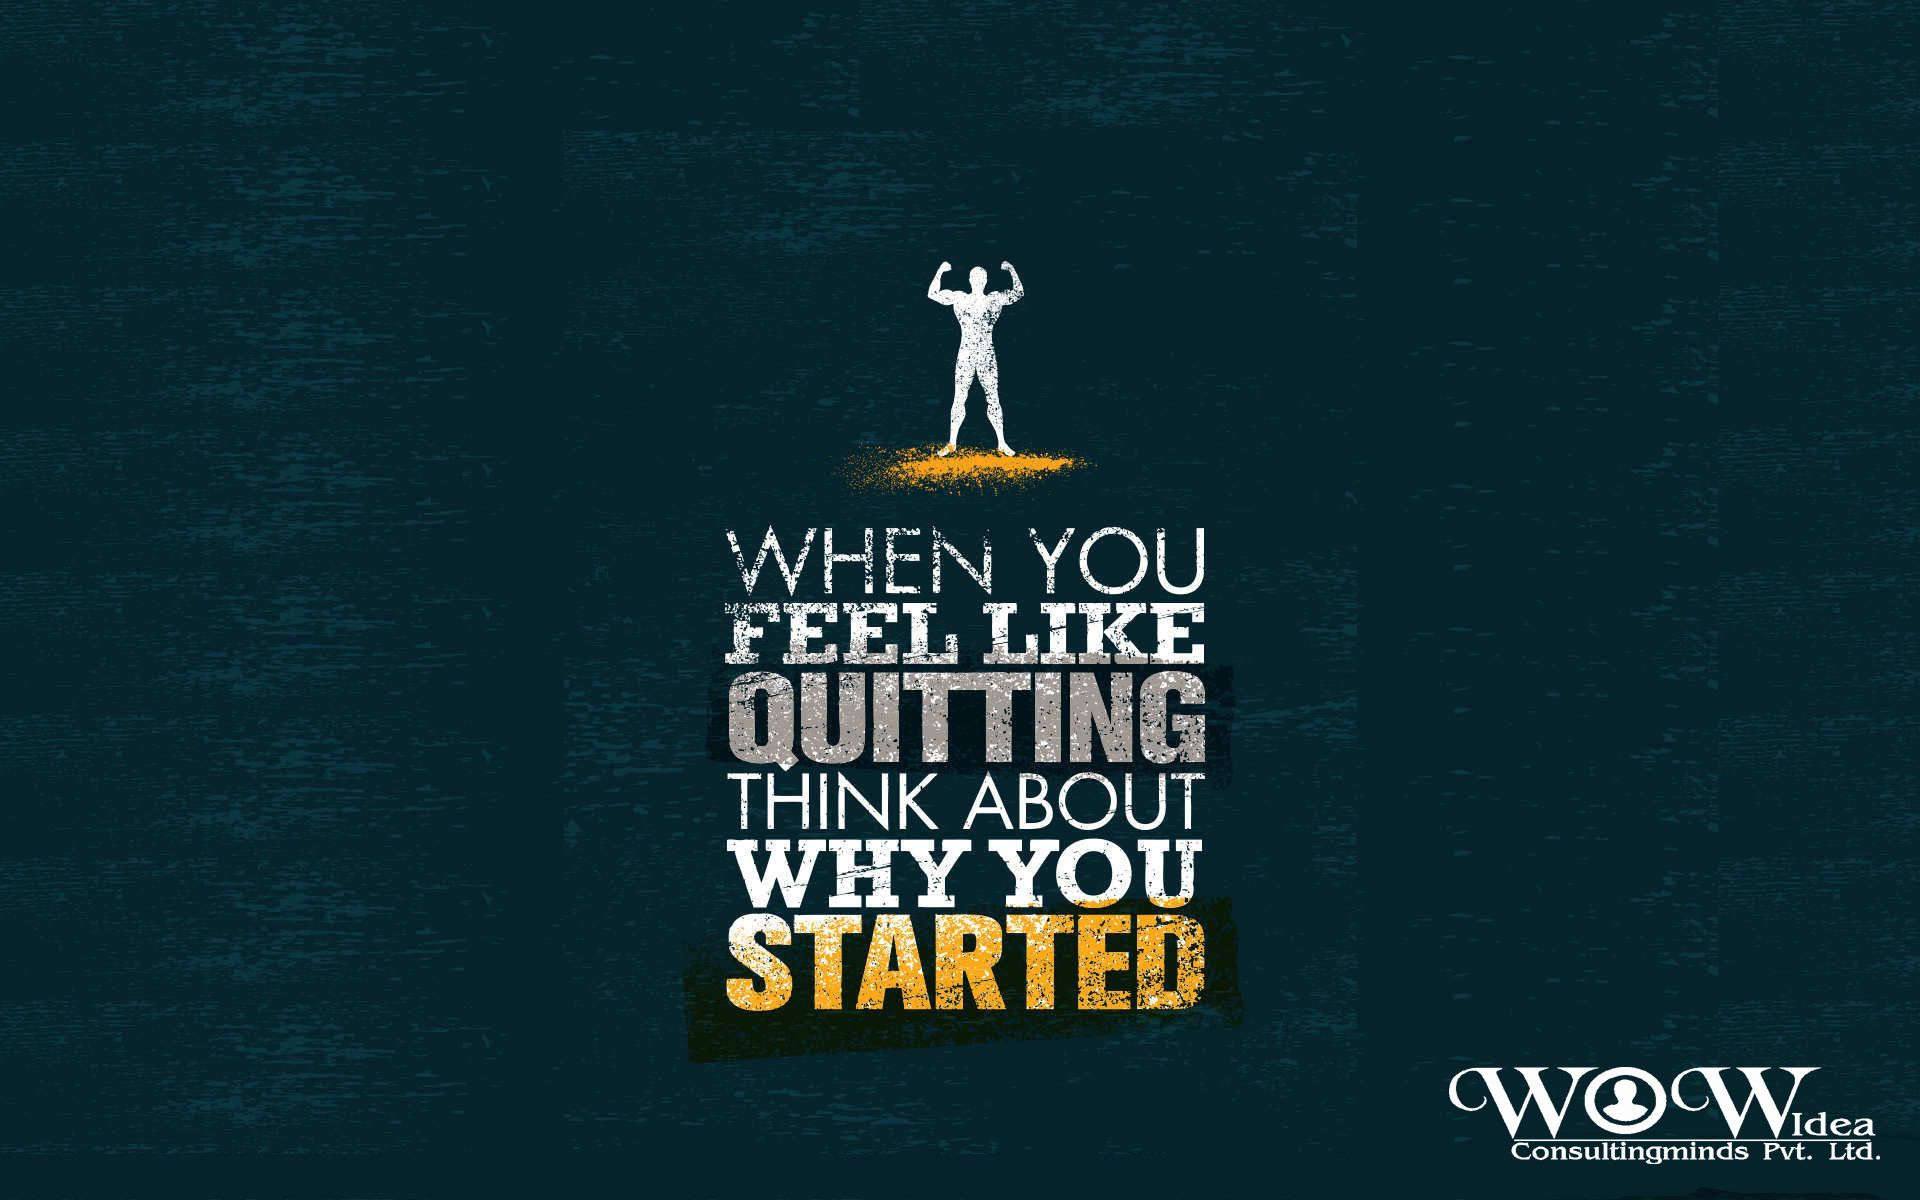 Wowidea Technology Motivational Quotes Wallpaper Inspirational Quotes Hd Quotes Wallpaper For Mobile